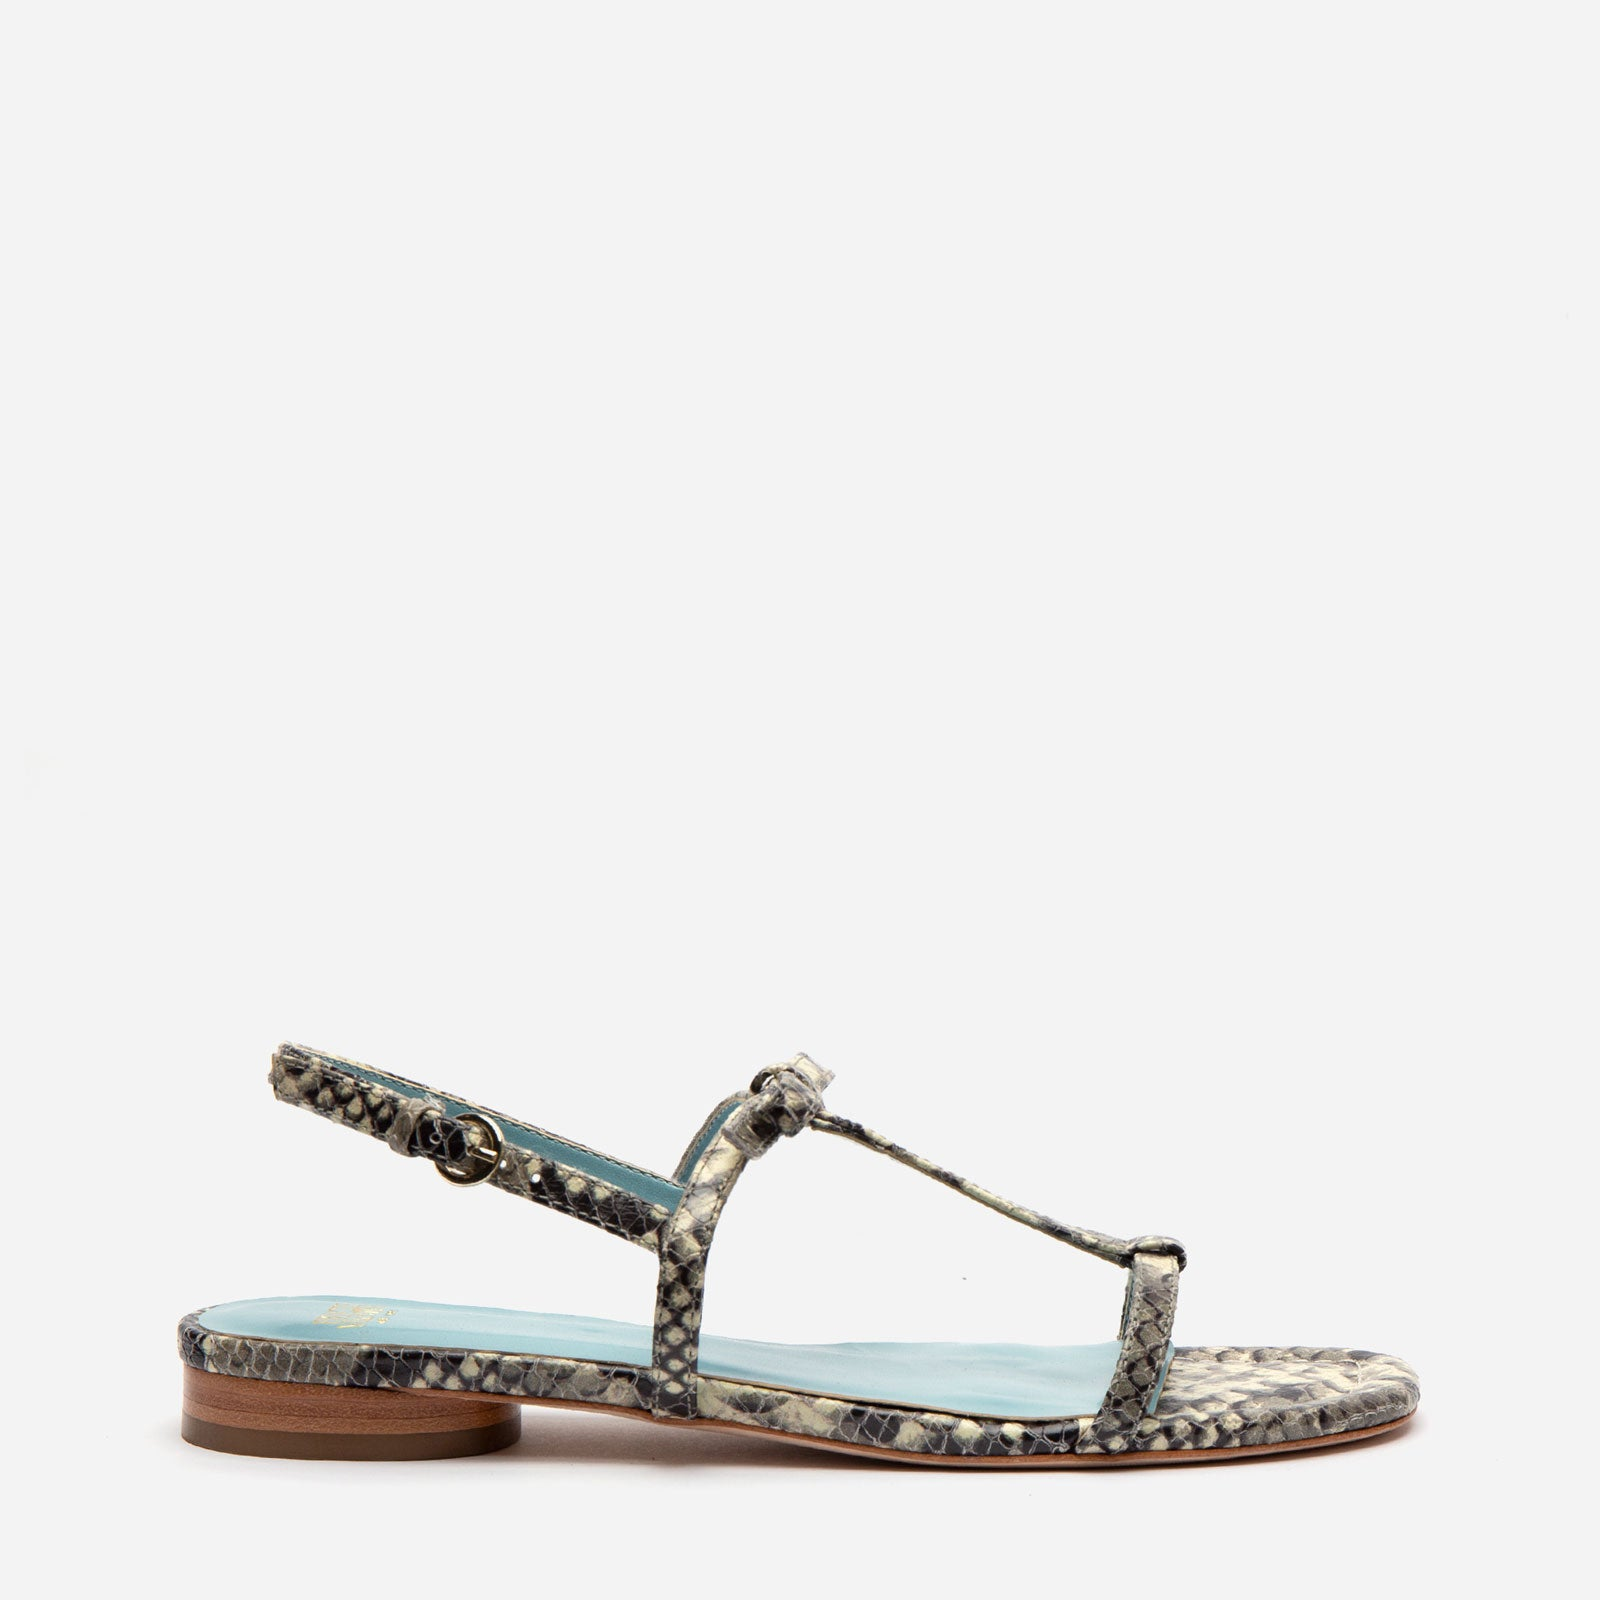 Lily Snake Embossed Leather Sandal Roccia *FINAL SALE*